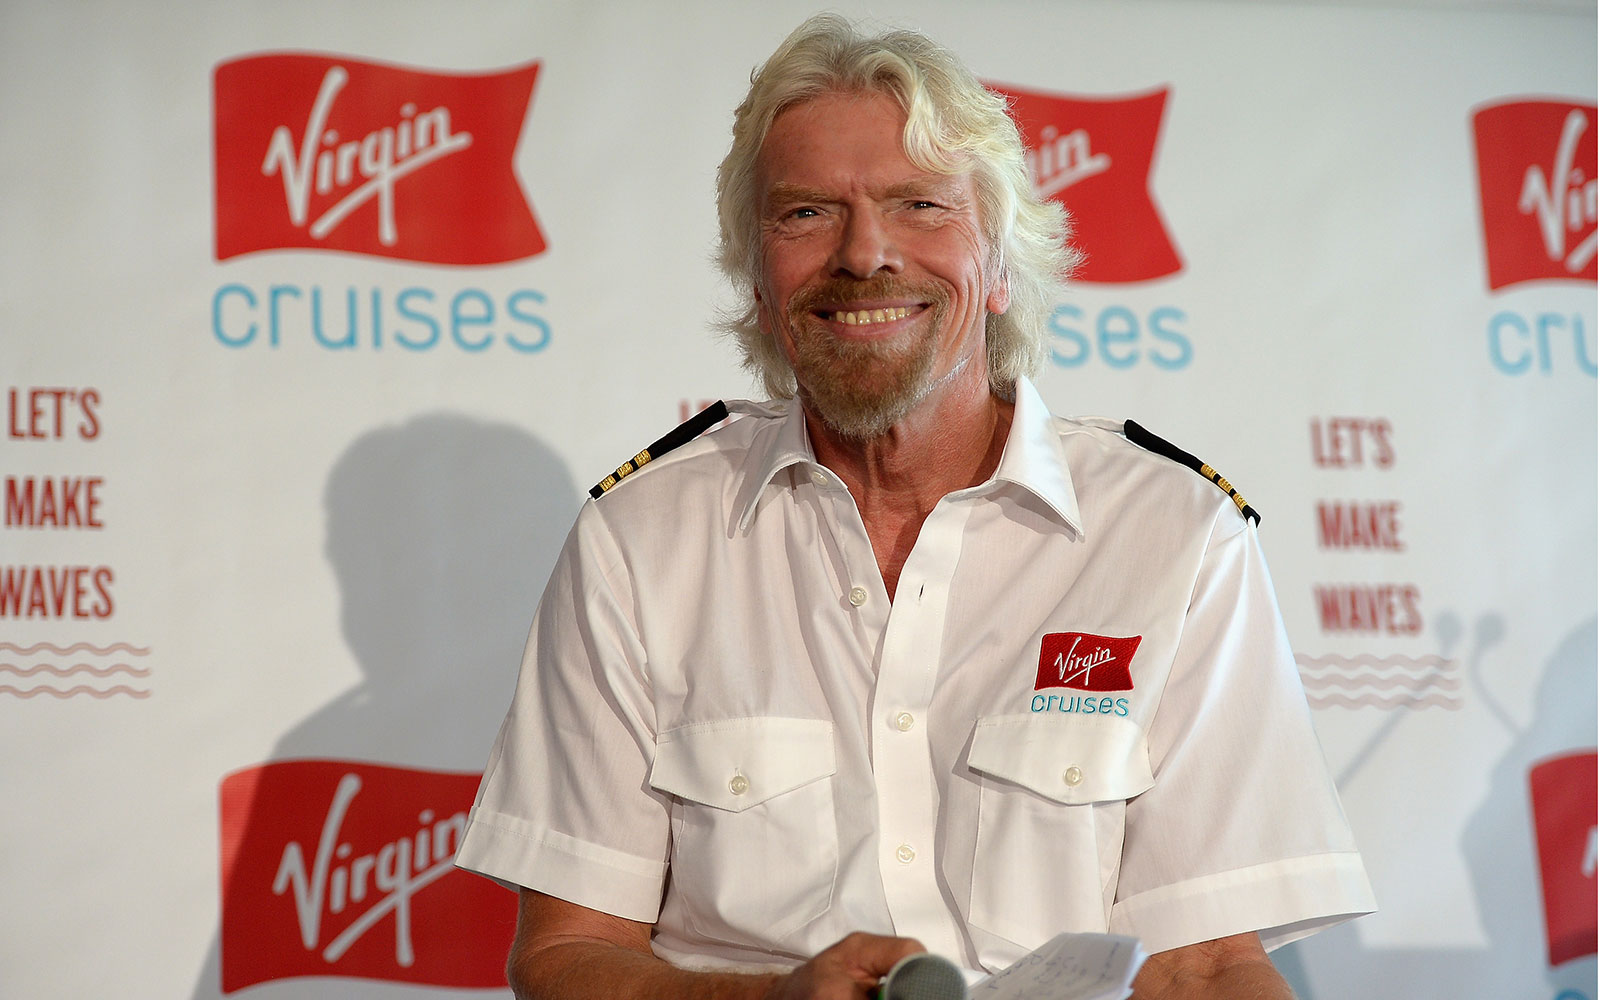 Virgin Cruises to Set Sail in 2020| Travel + Leisure